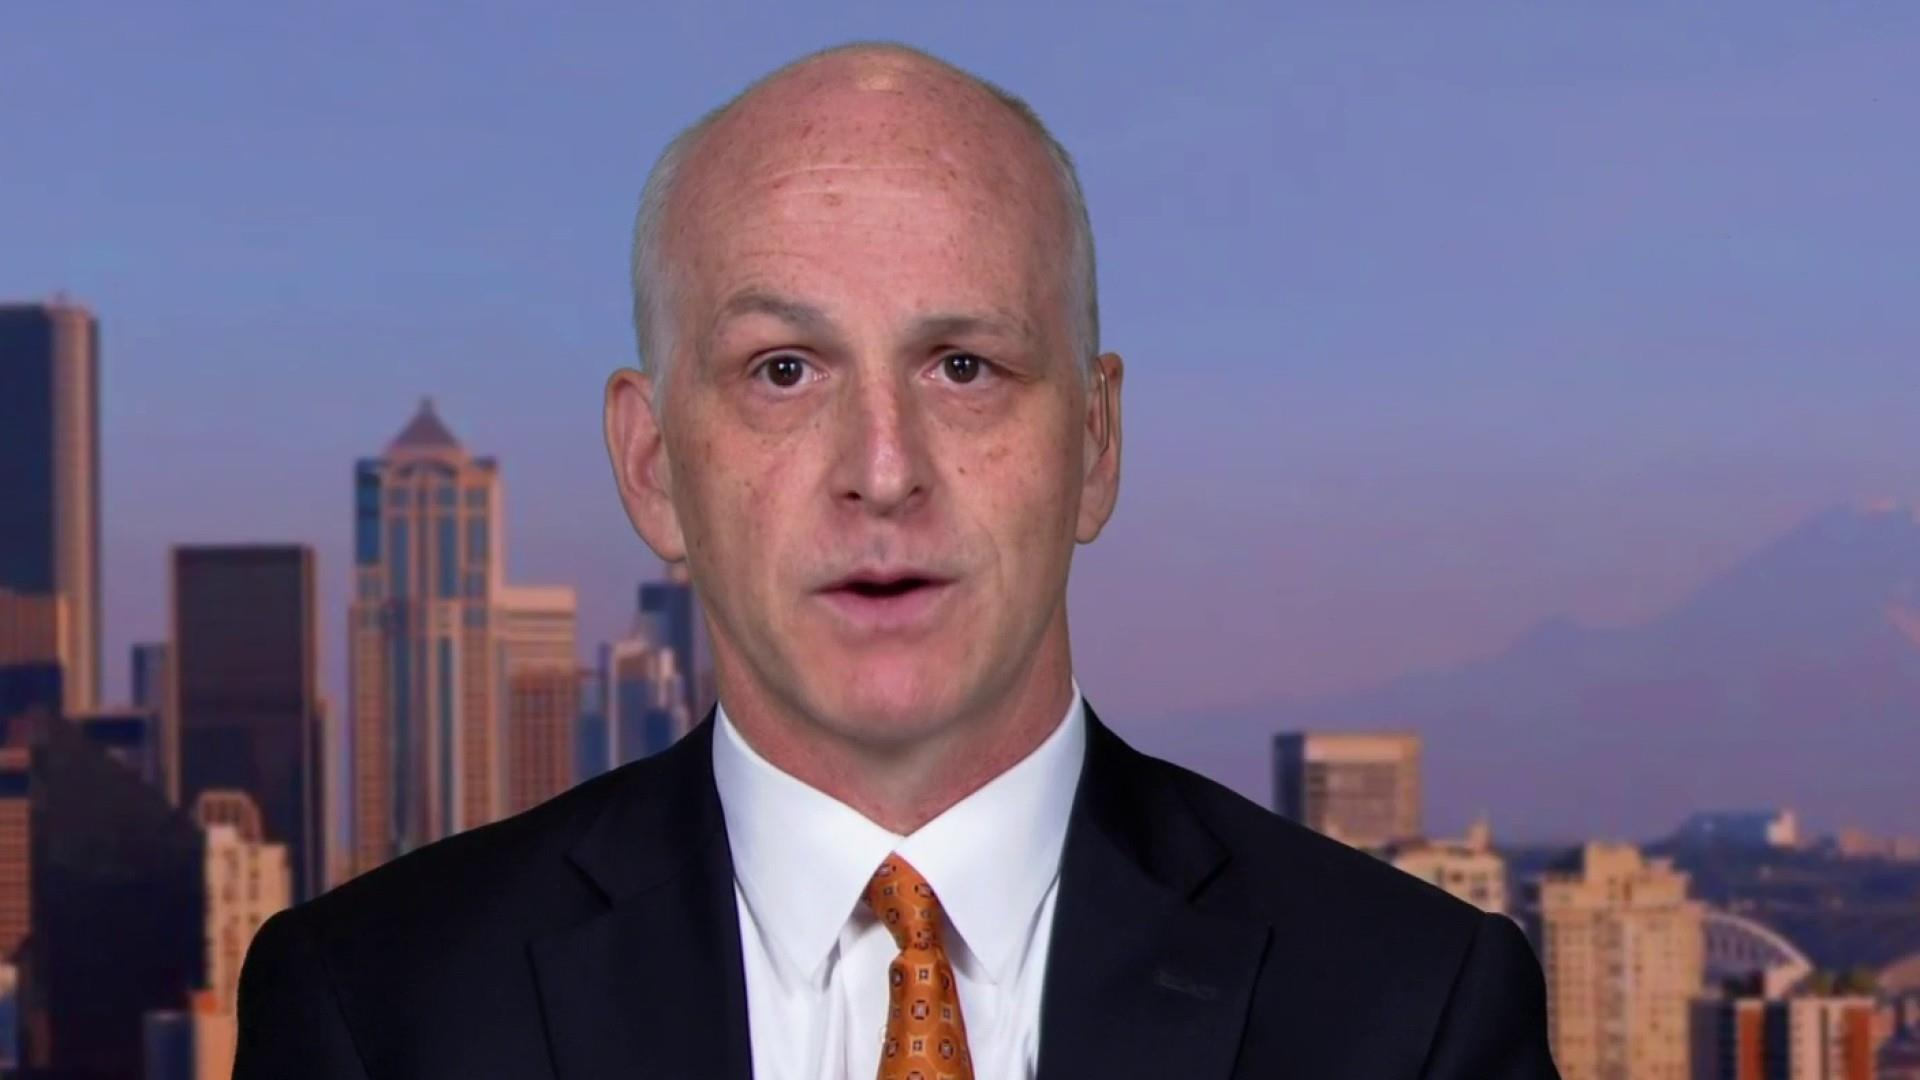 Rep. Adam Smith: To be okay with U.S. troops leaving Syria, I need to know who will fight ISIS